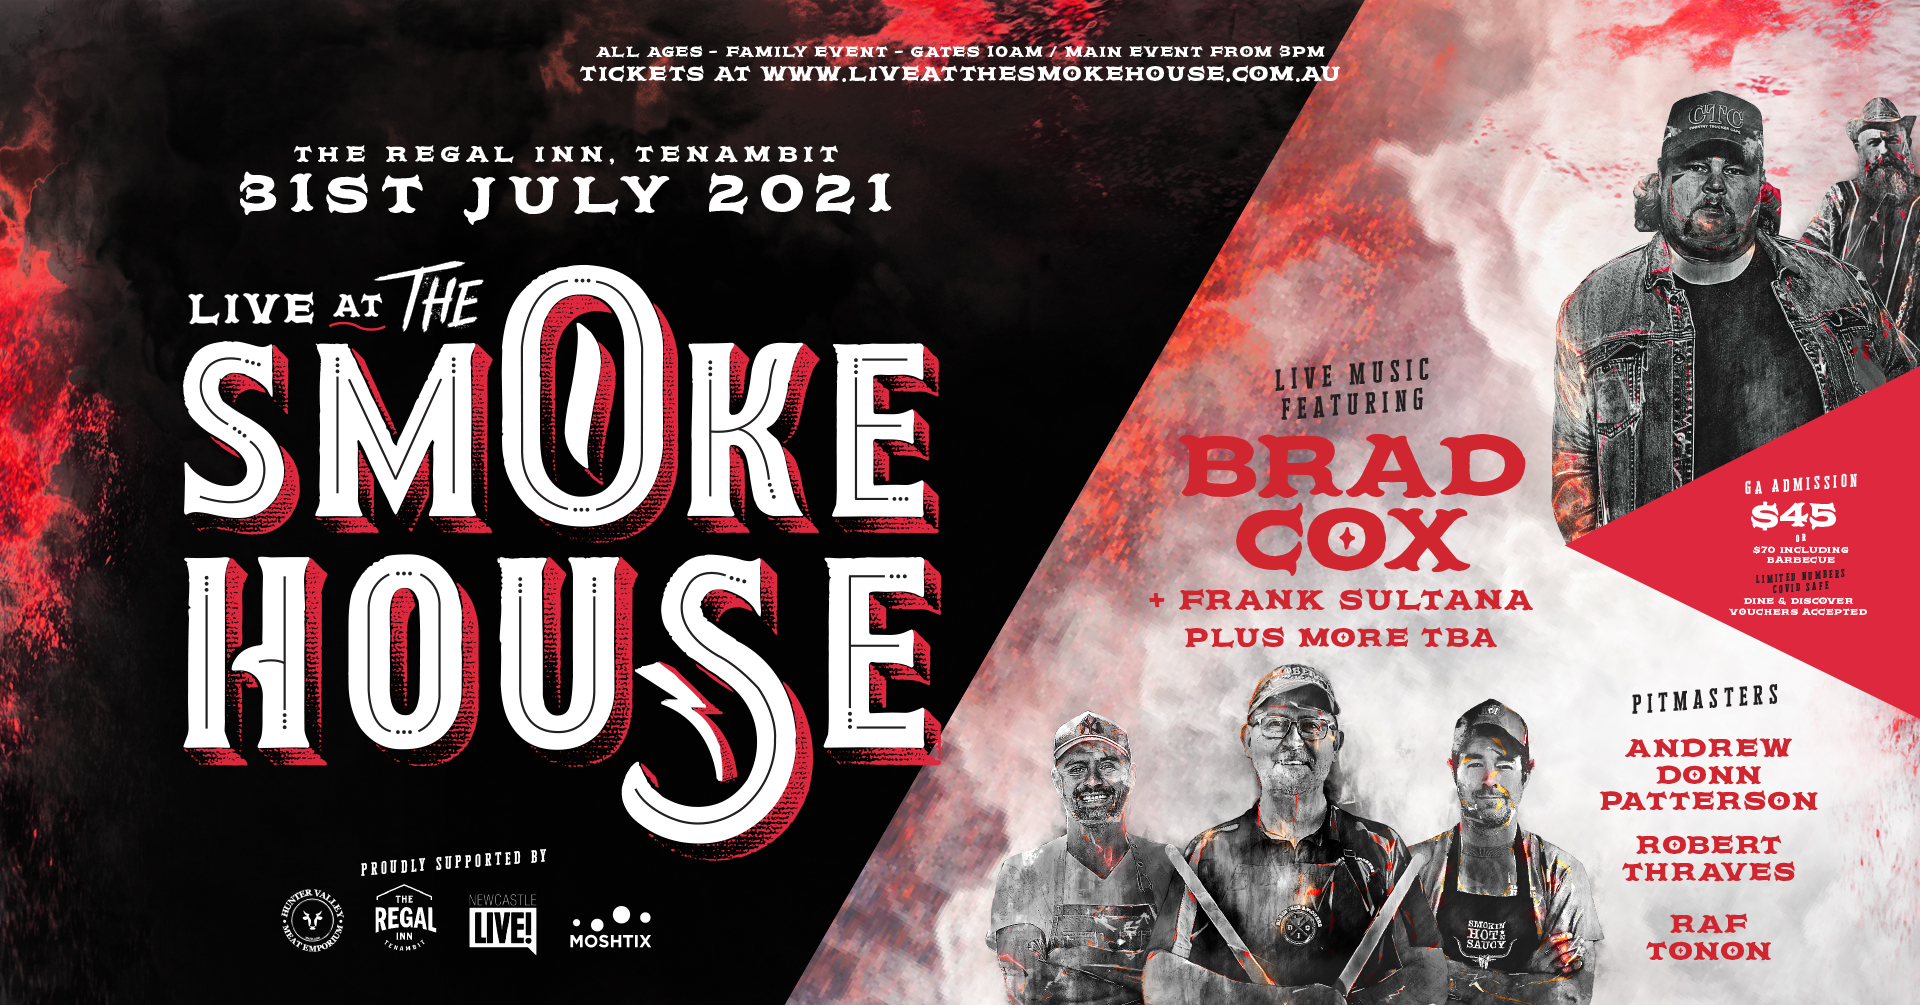 LIVE AT THE SMOKEHOUSE: Brad Cox & Frank Sultana with some of Australia's best pitmasters!